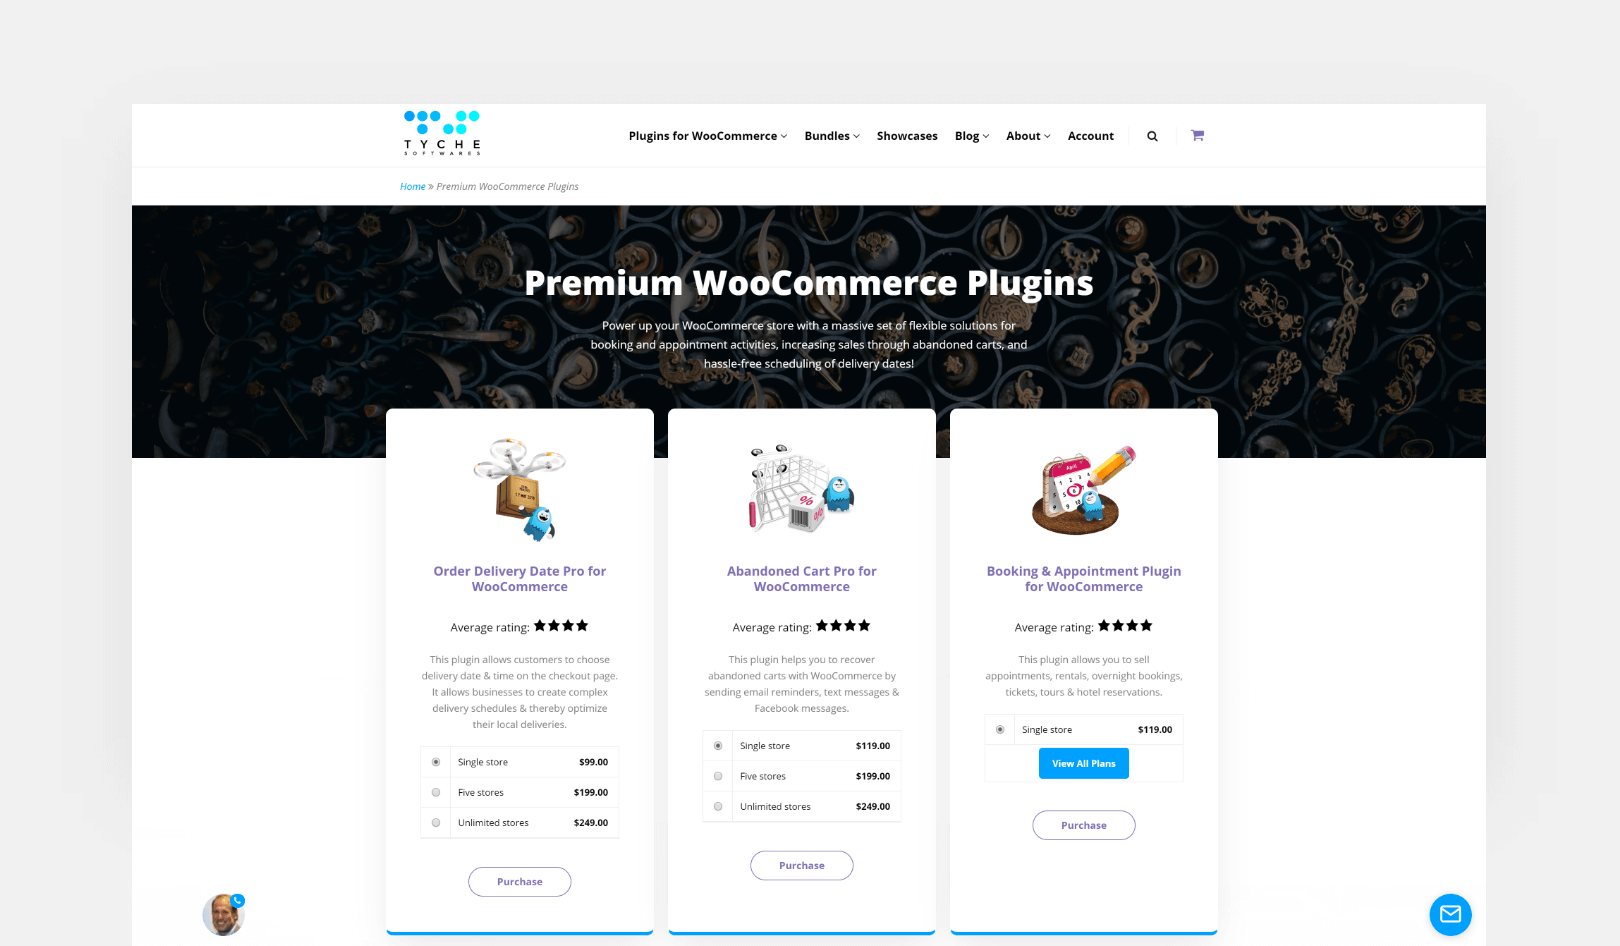 Premium WooCommerce Plugins Page Screenshot